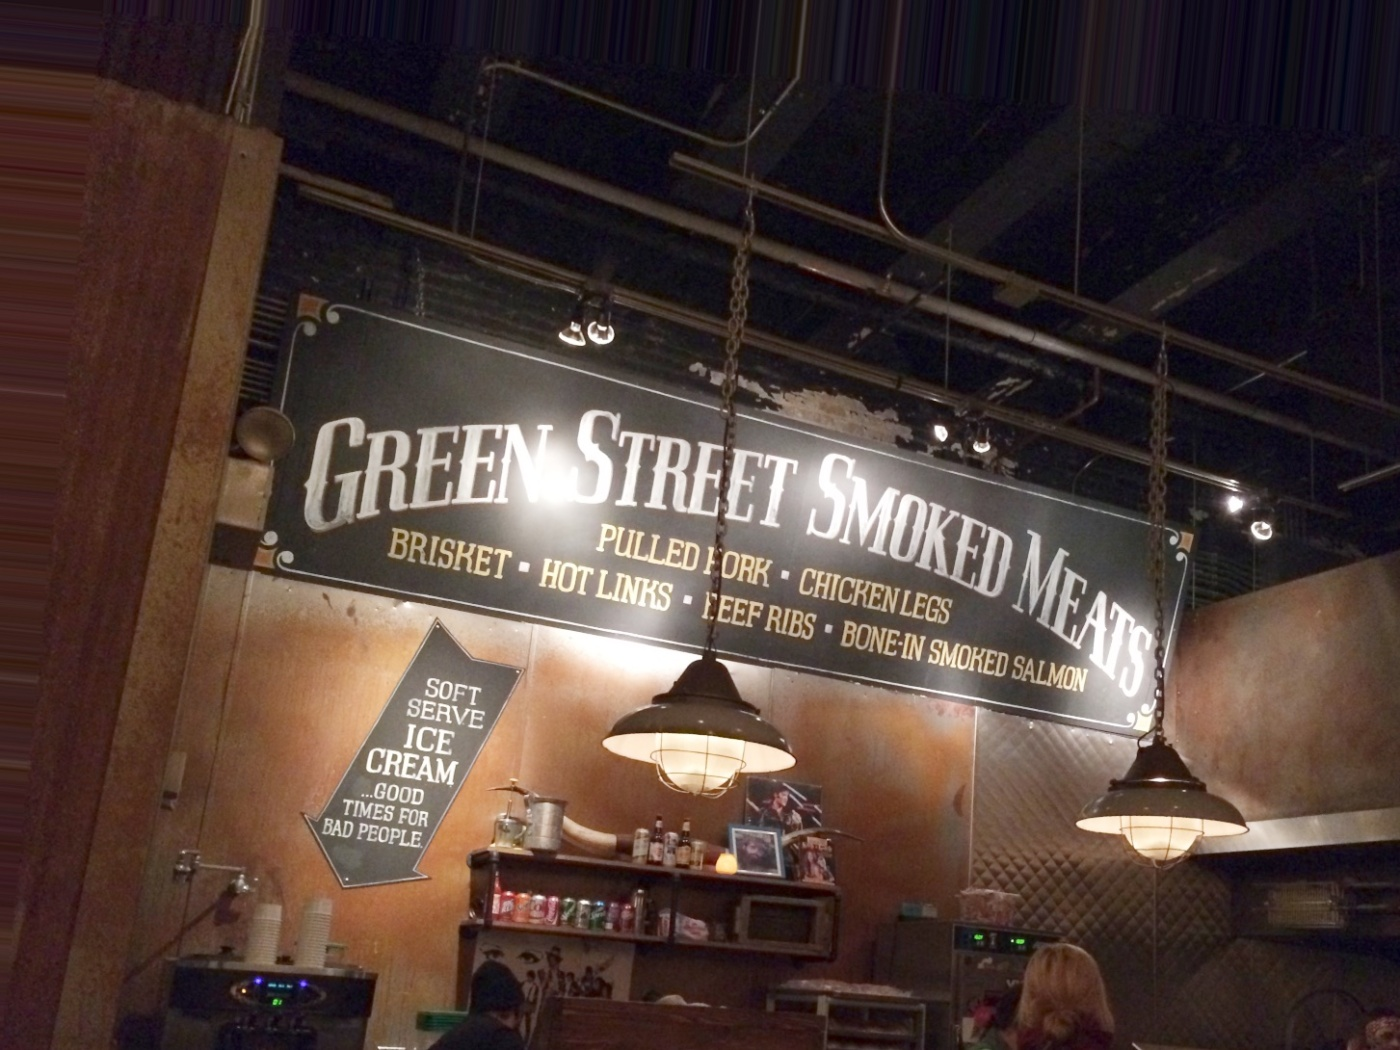 Pick-up counter at Green Street Smoked Meats